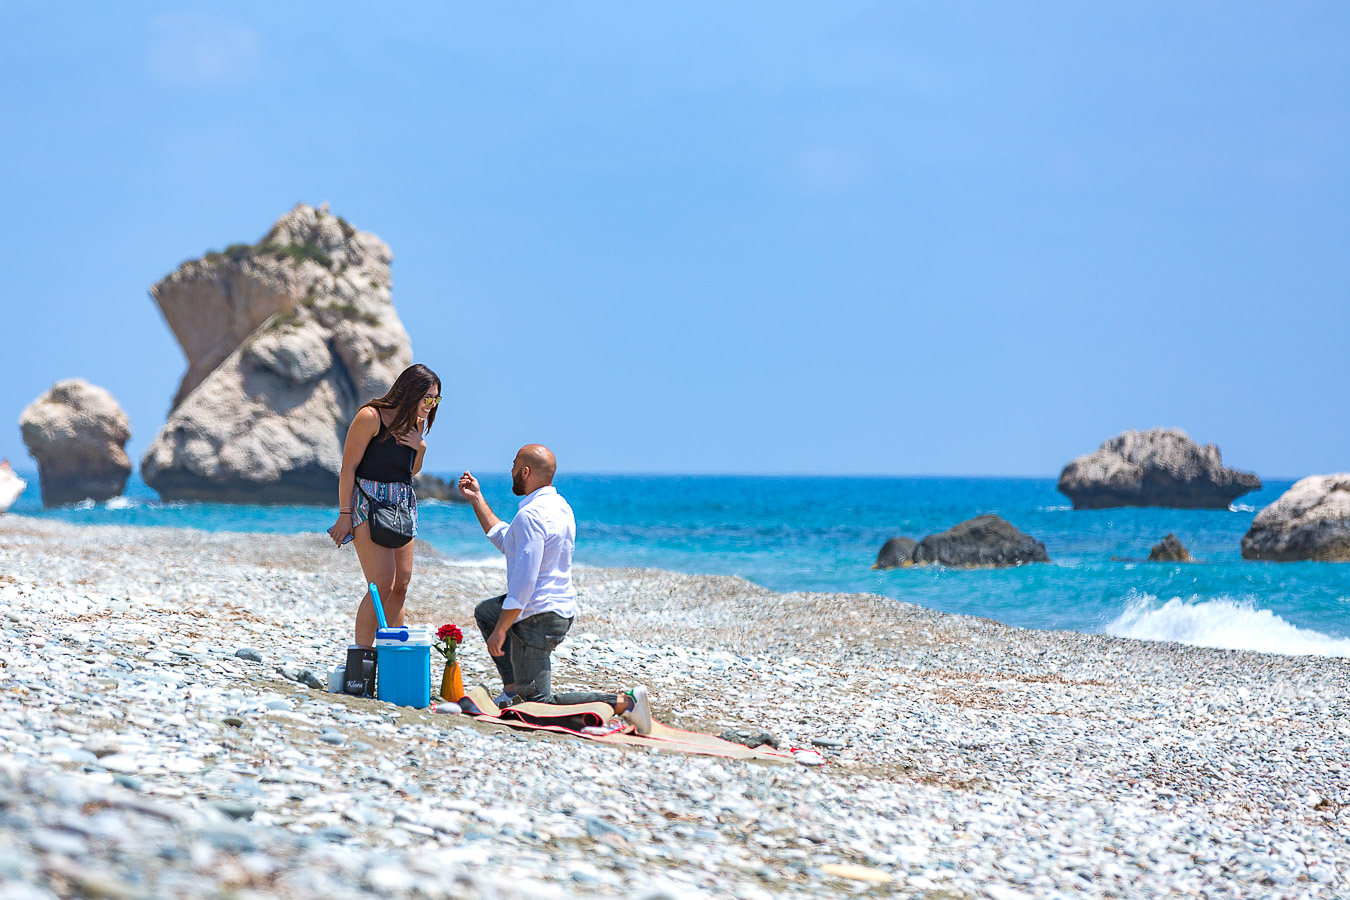 Christian kneels in front of Jana, asking her to marry him, at the secret location of the Aphrodite Rocks in Paphos, Cyprus.